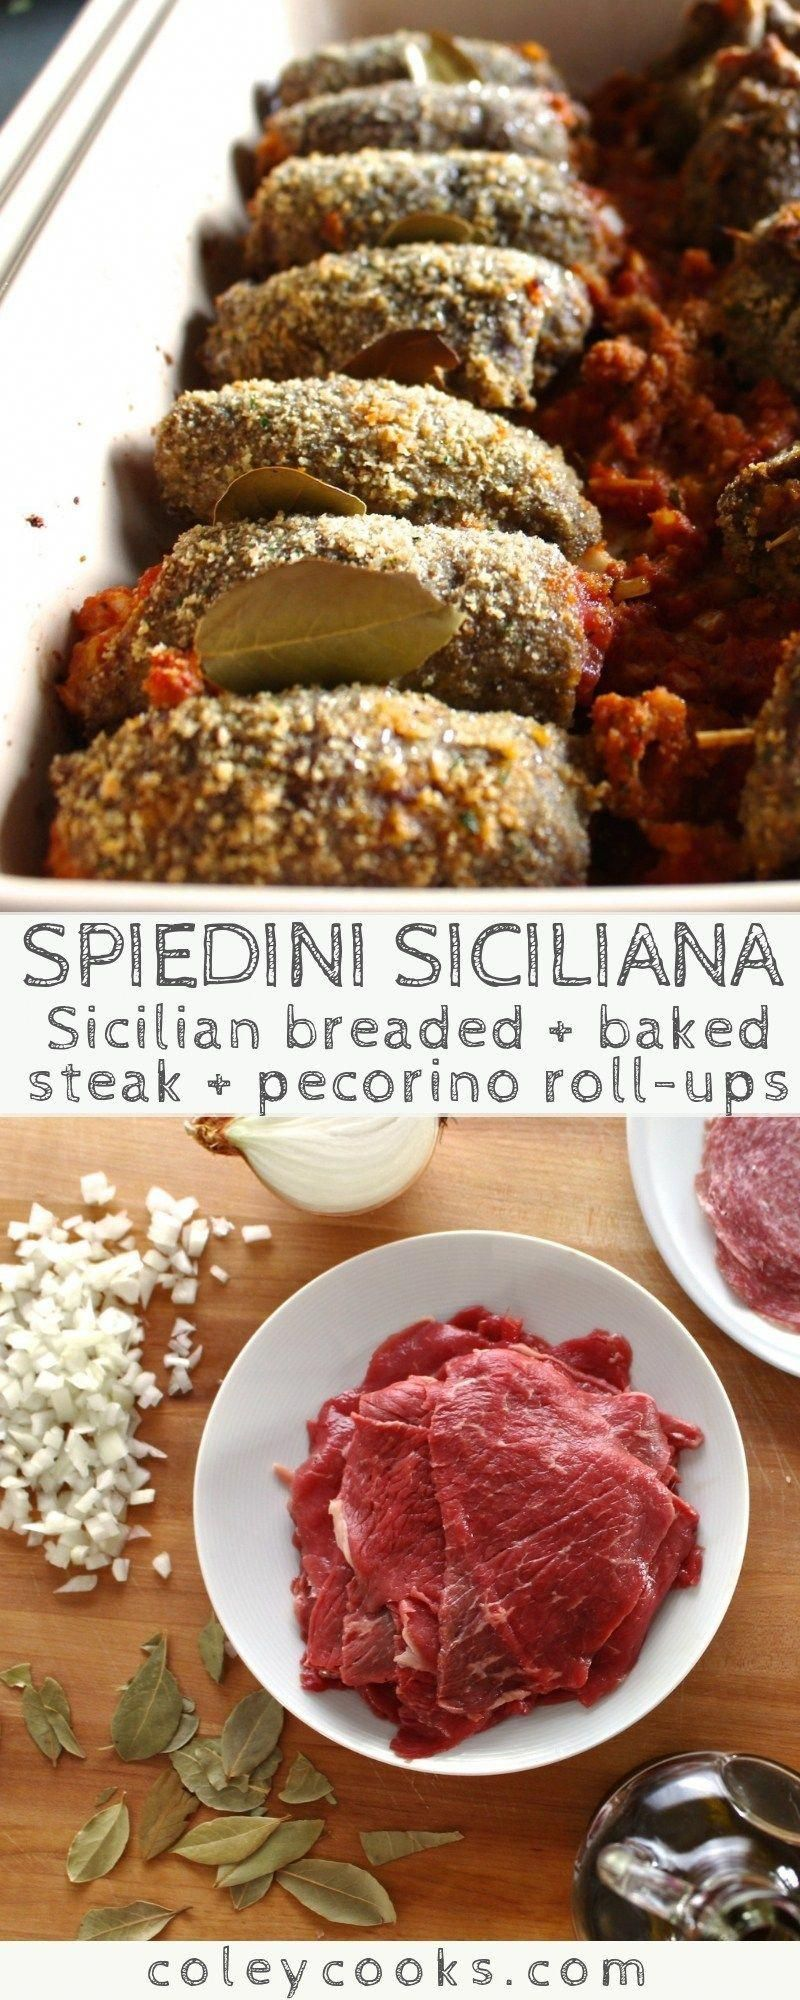 Spiedini Siciliana | My family's authentic Sicilian recipe for spiedini. Thinly sliced beef, breaded + stuffed with tomatoes, cheese and onions. Great holiday recipe! #easy #christmas #recipe #appetizer #holidays #beef #Sicilian | ColeyCooks.com #appetizersitalian